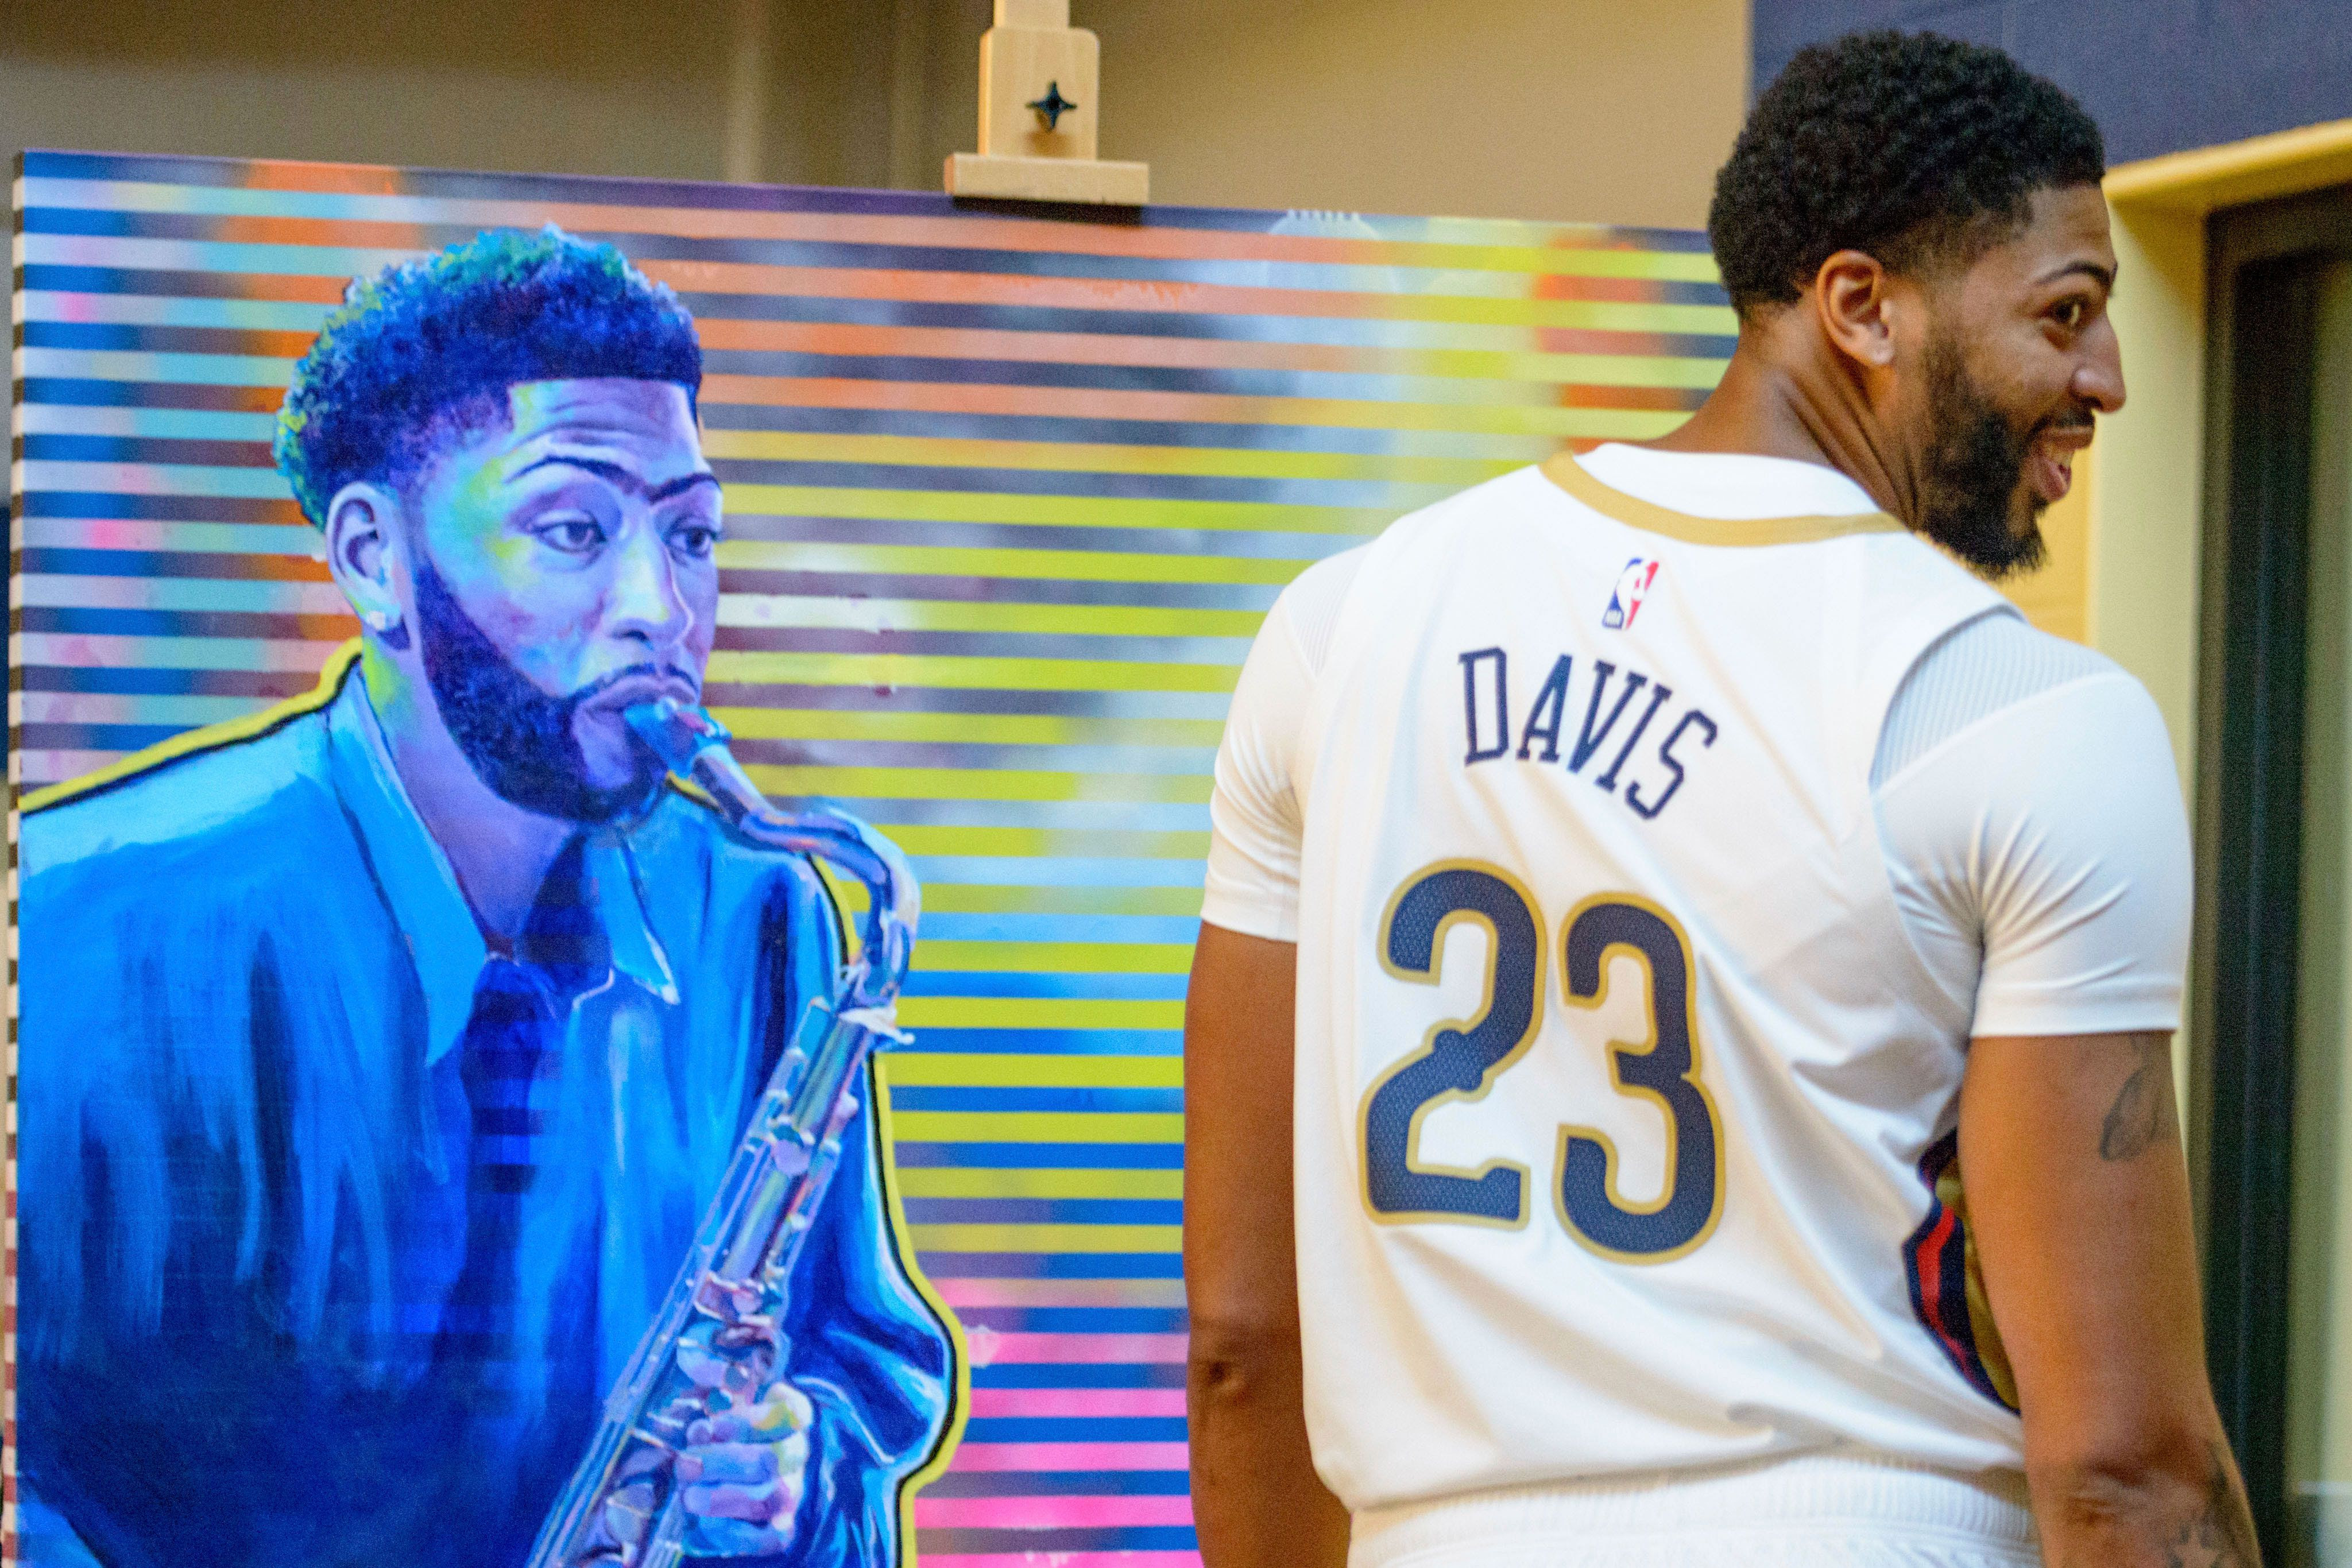 View|28+ Anthony Davis Daughter Pictures